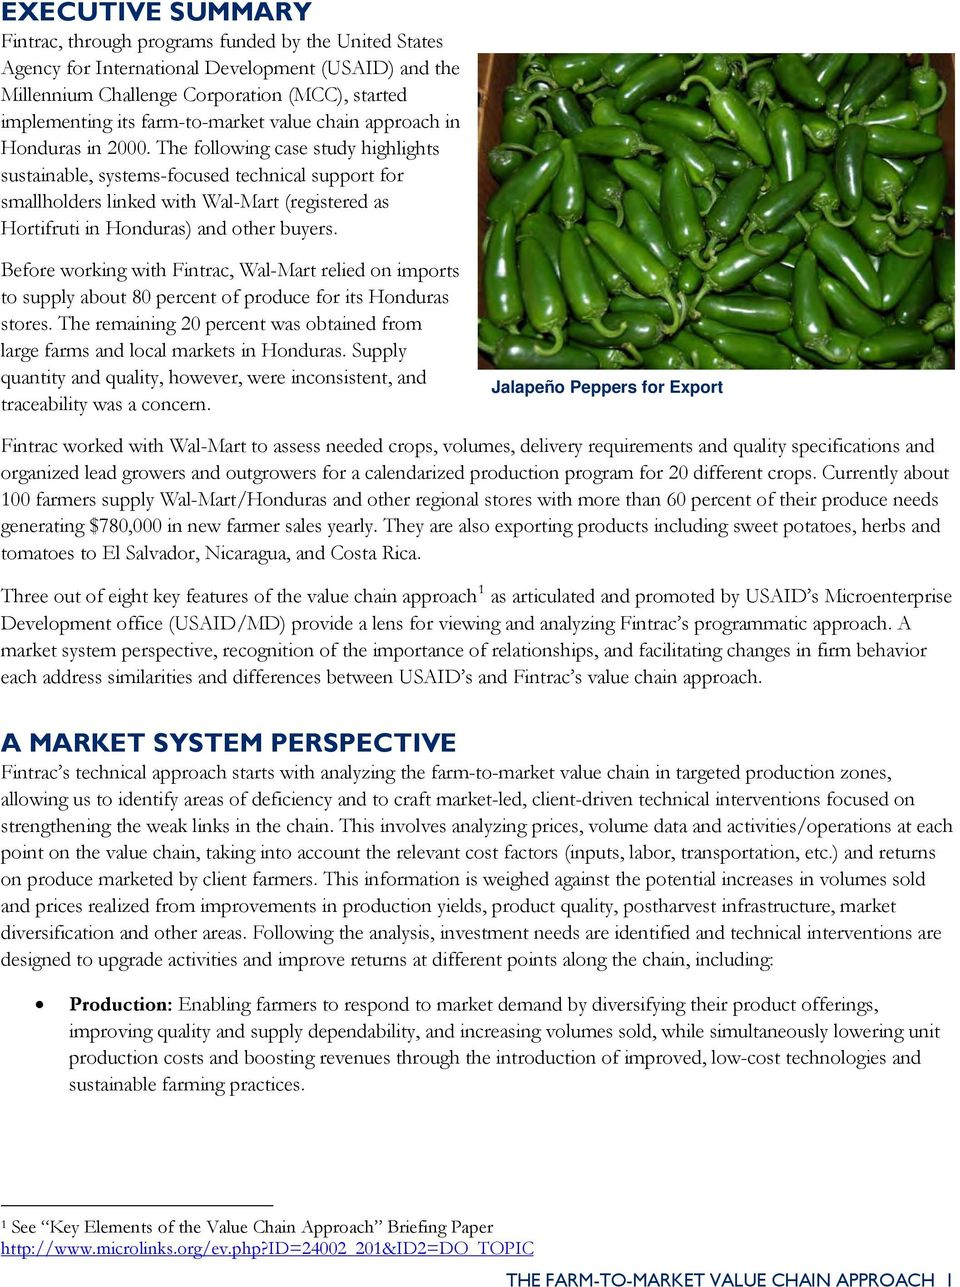 The following case study highlights sustainable, systems-focused technical support for smallholders linked with Wal-Mart (registered as Hortifruti in Honduras) and other buyers.